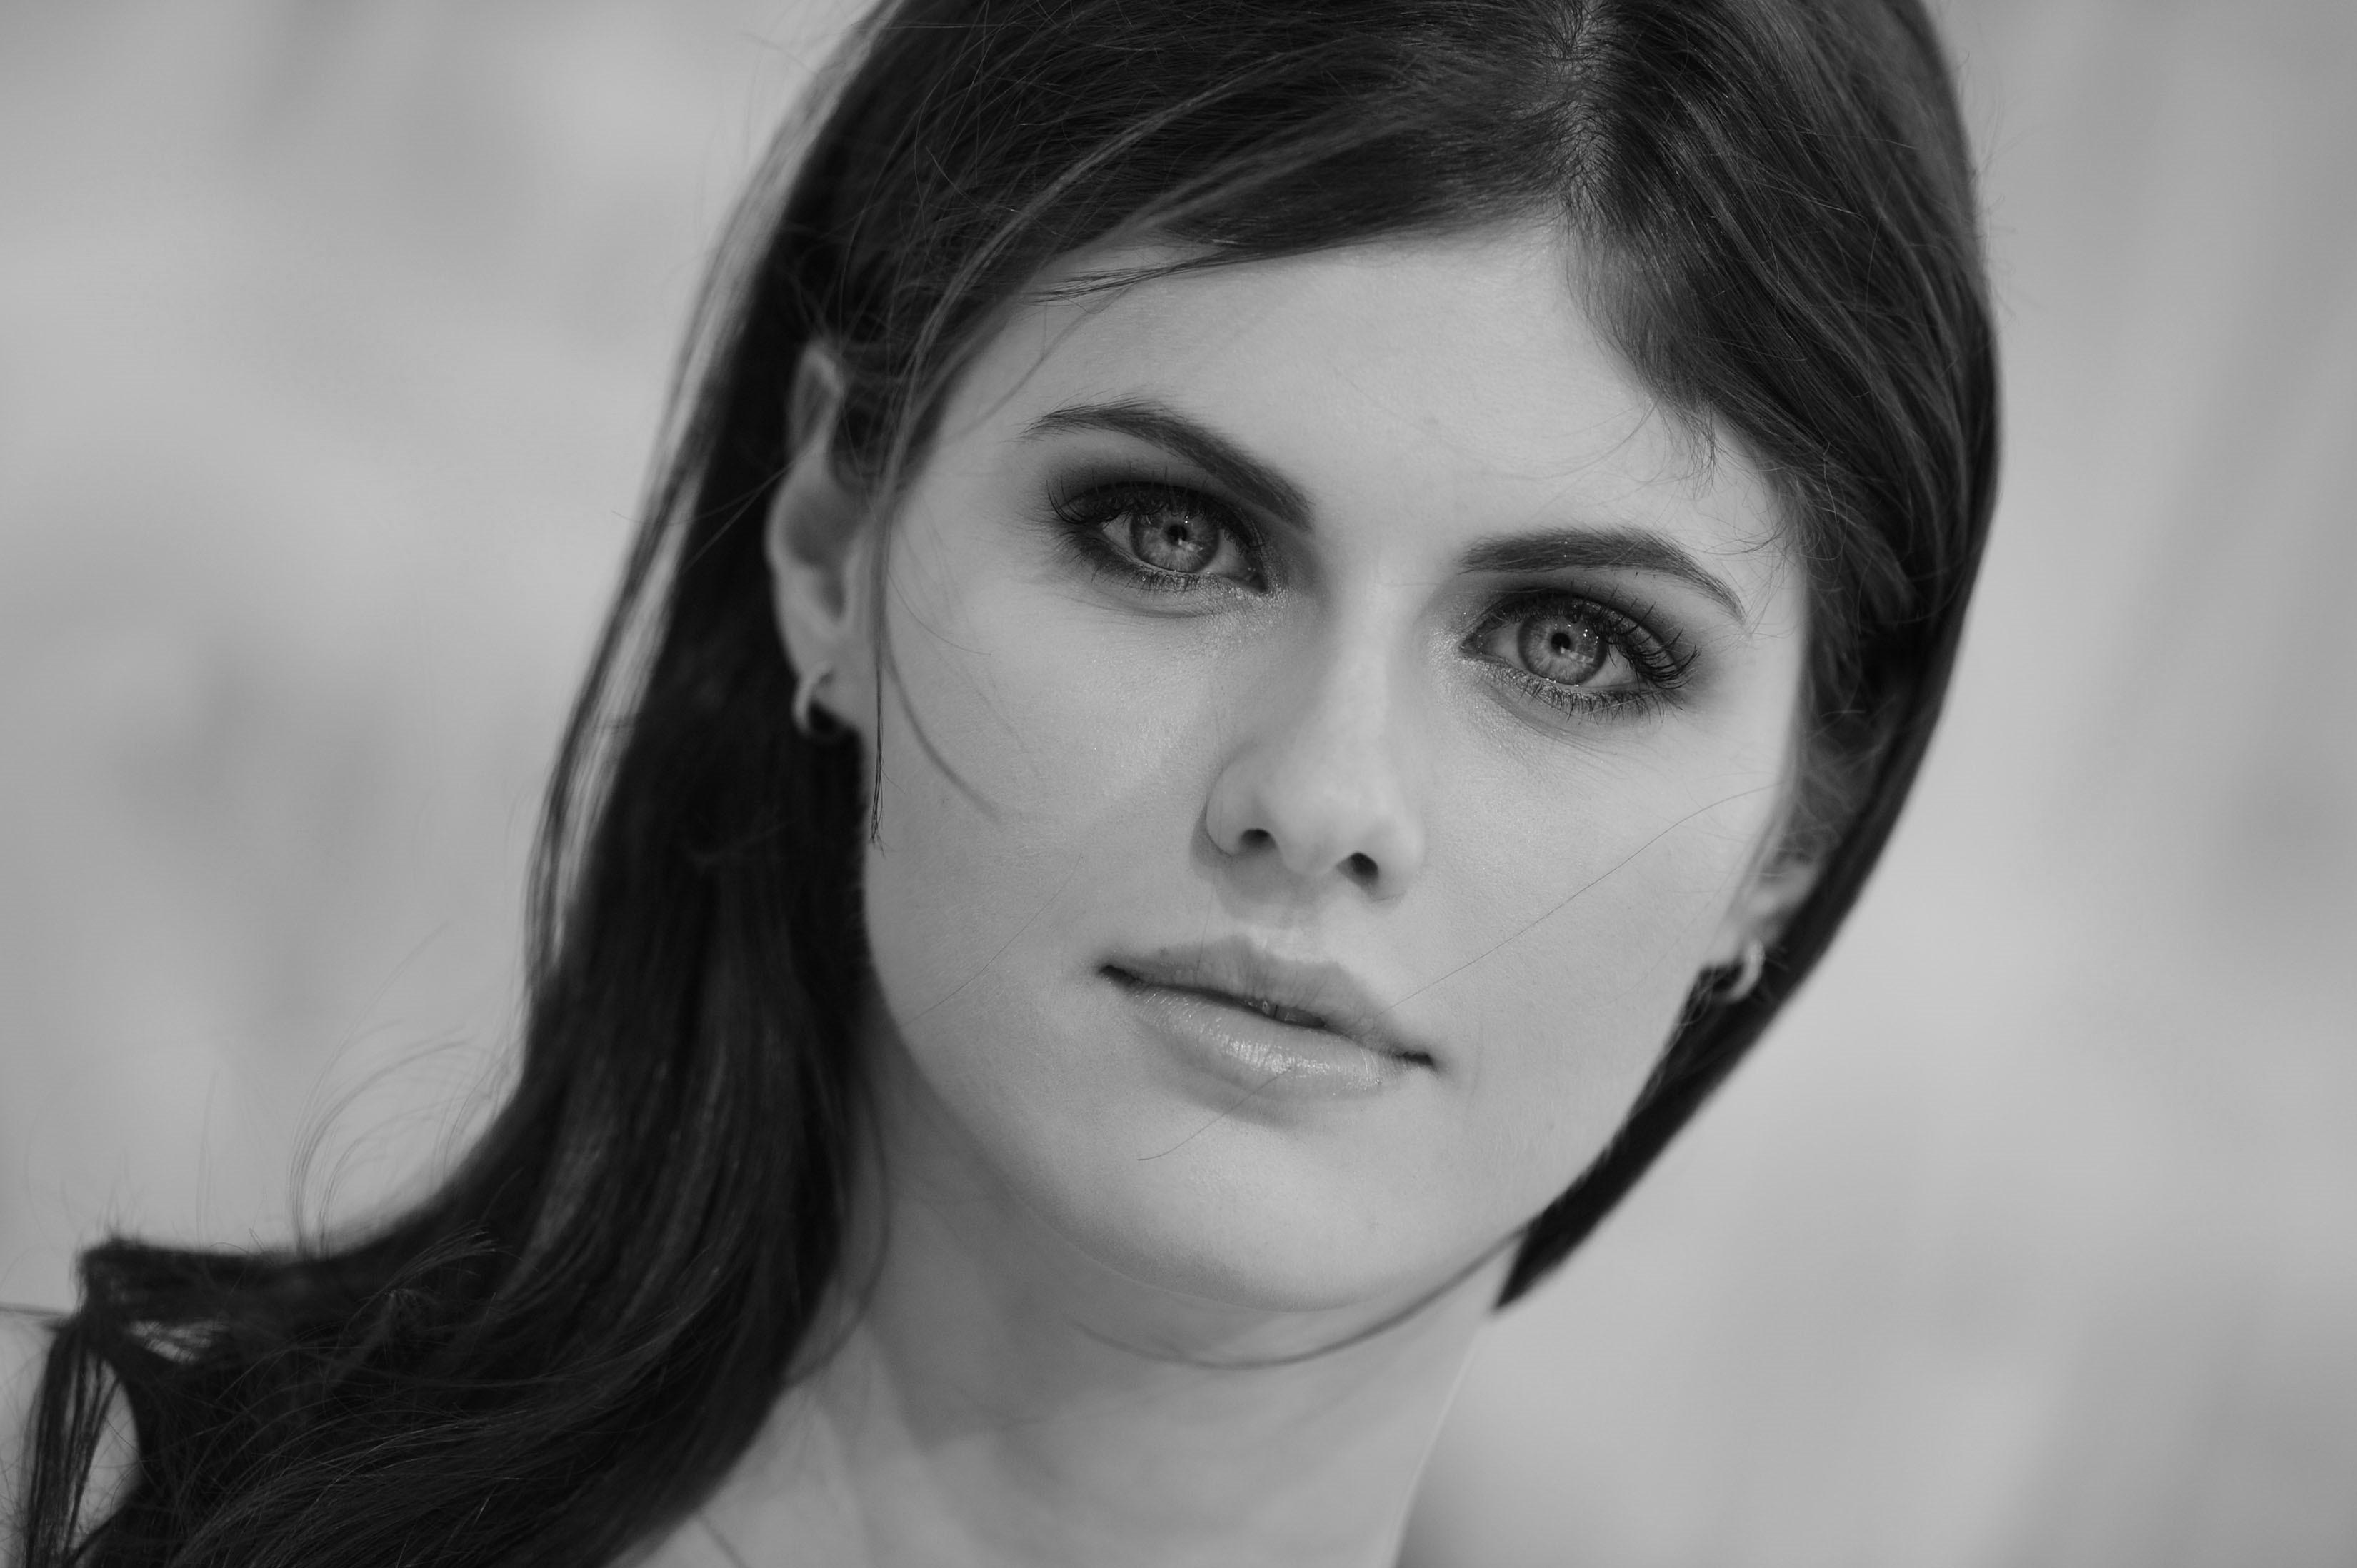 Alexandra Daddario Monochrome Hd Celebrities 4k Wallpapers Images Backgrounds Photos And Pictures